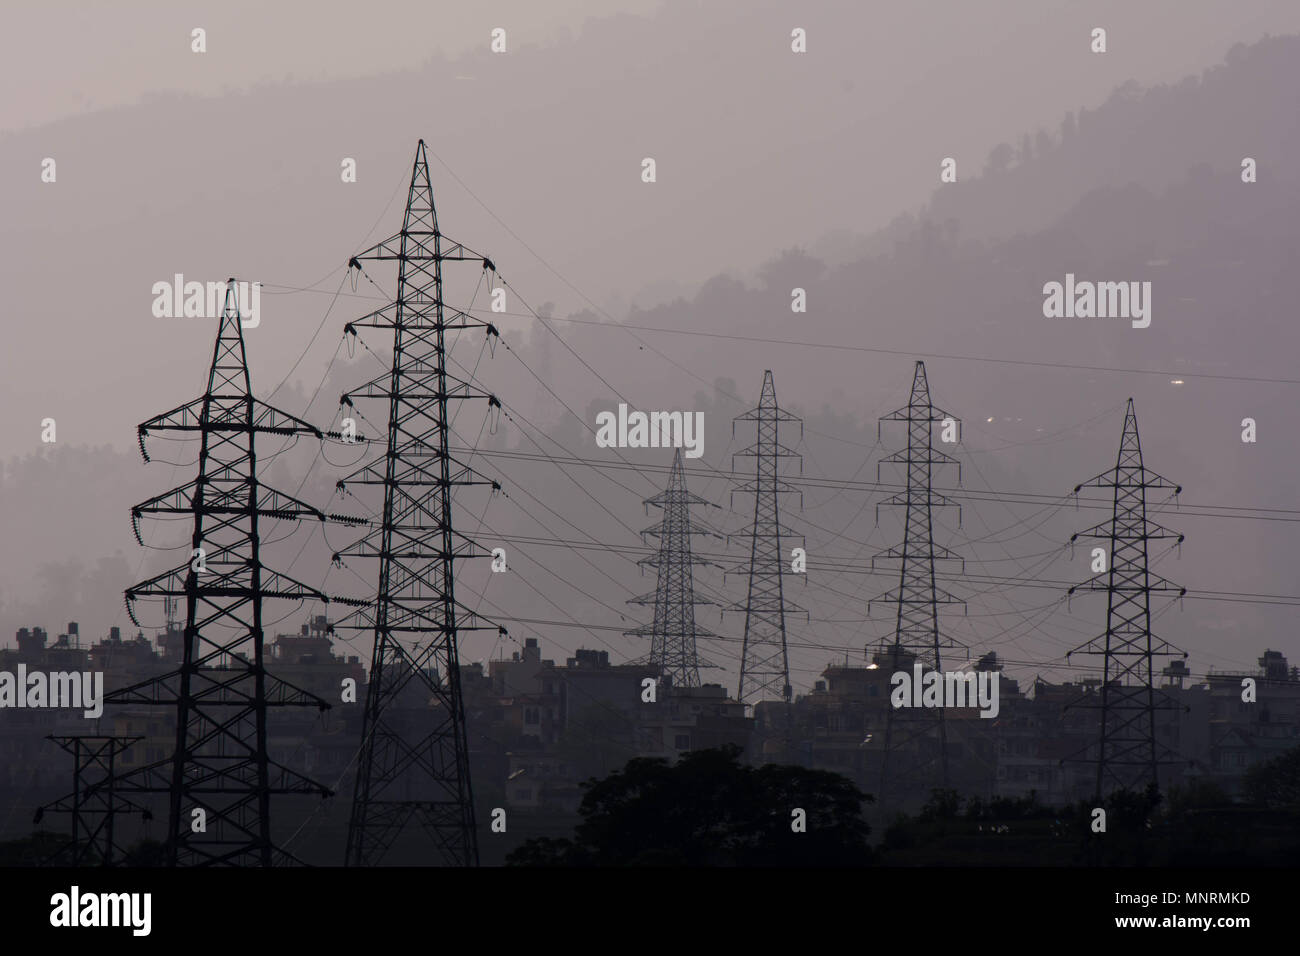 Power Electric Hydro Power Electric Pole And Wire Stock Photo 185532577 Alamy